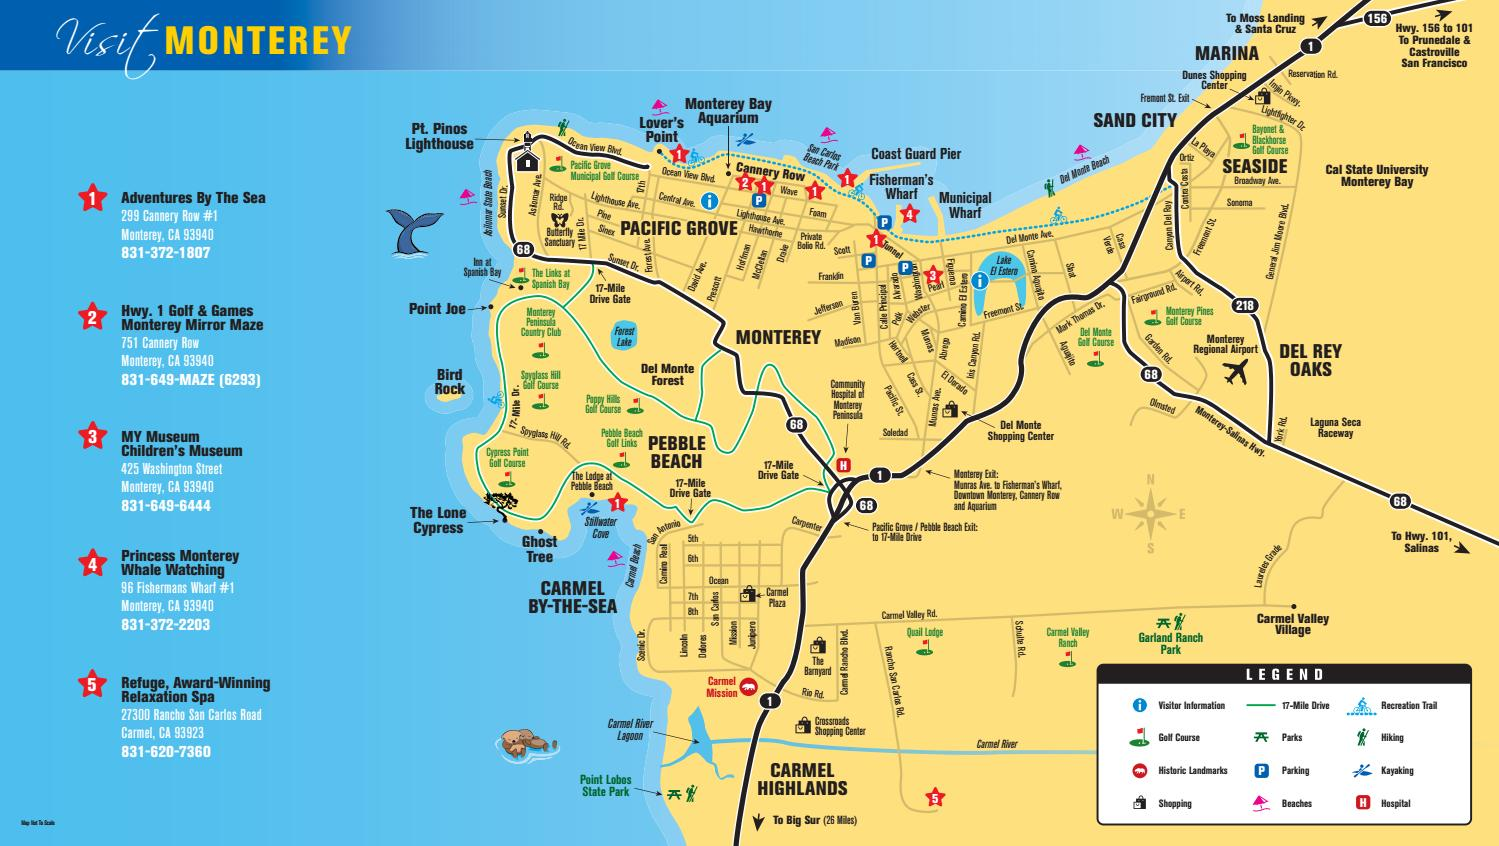 Monterey Bay Adventure Map by Certified Folder Display - issuu on